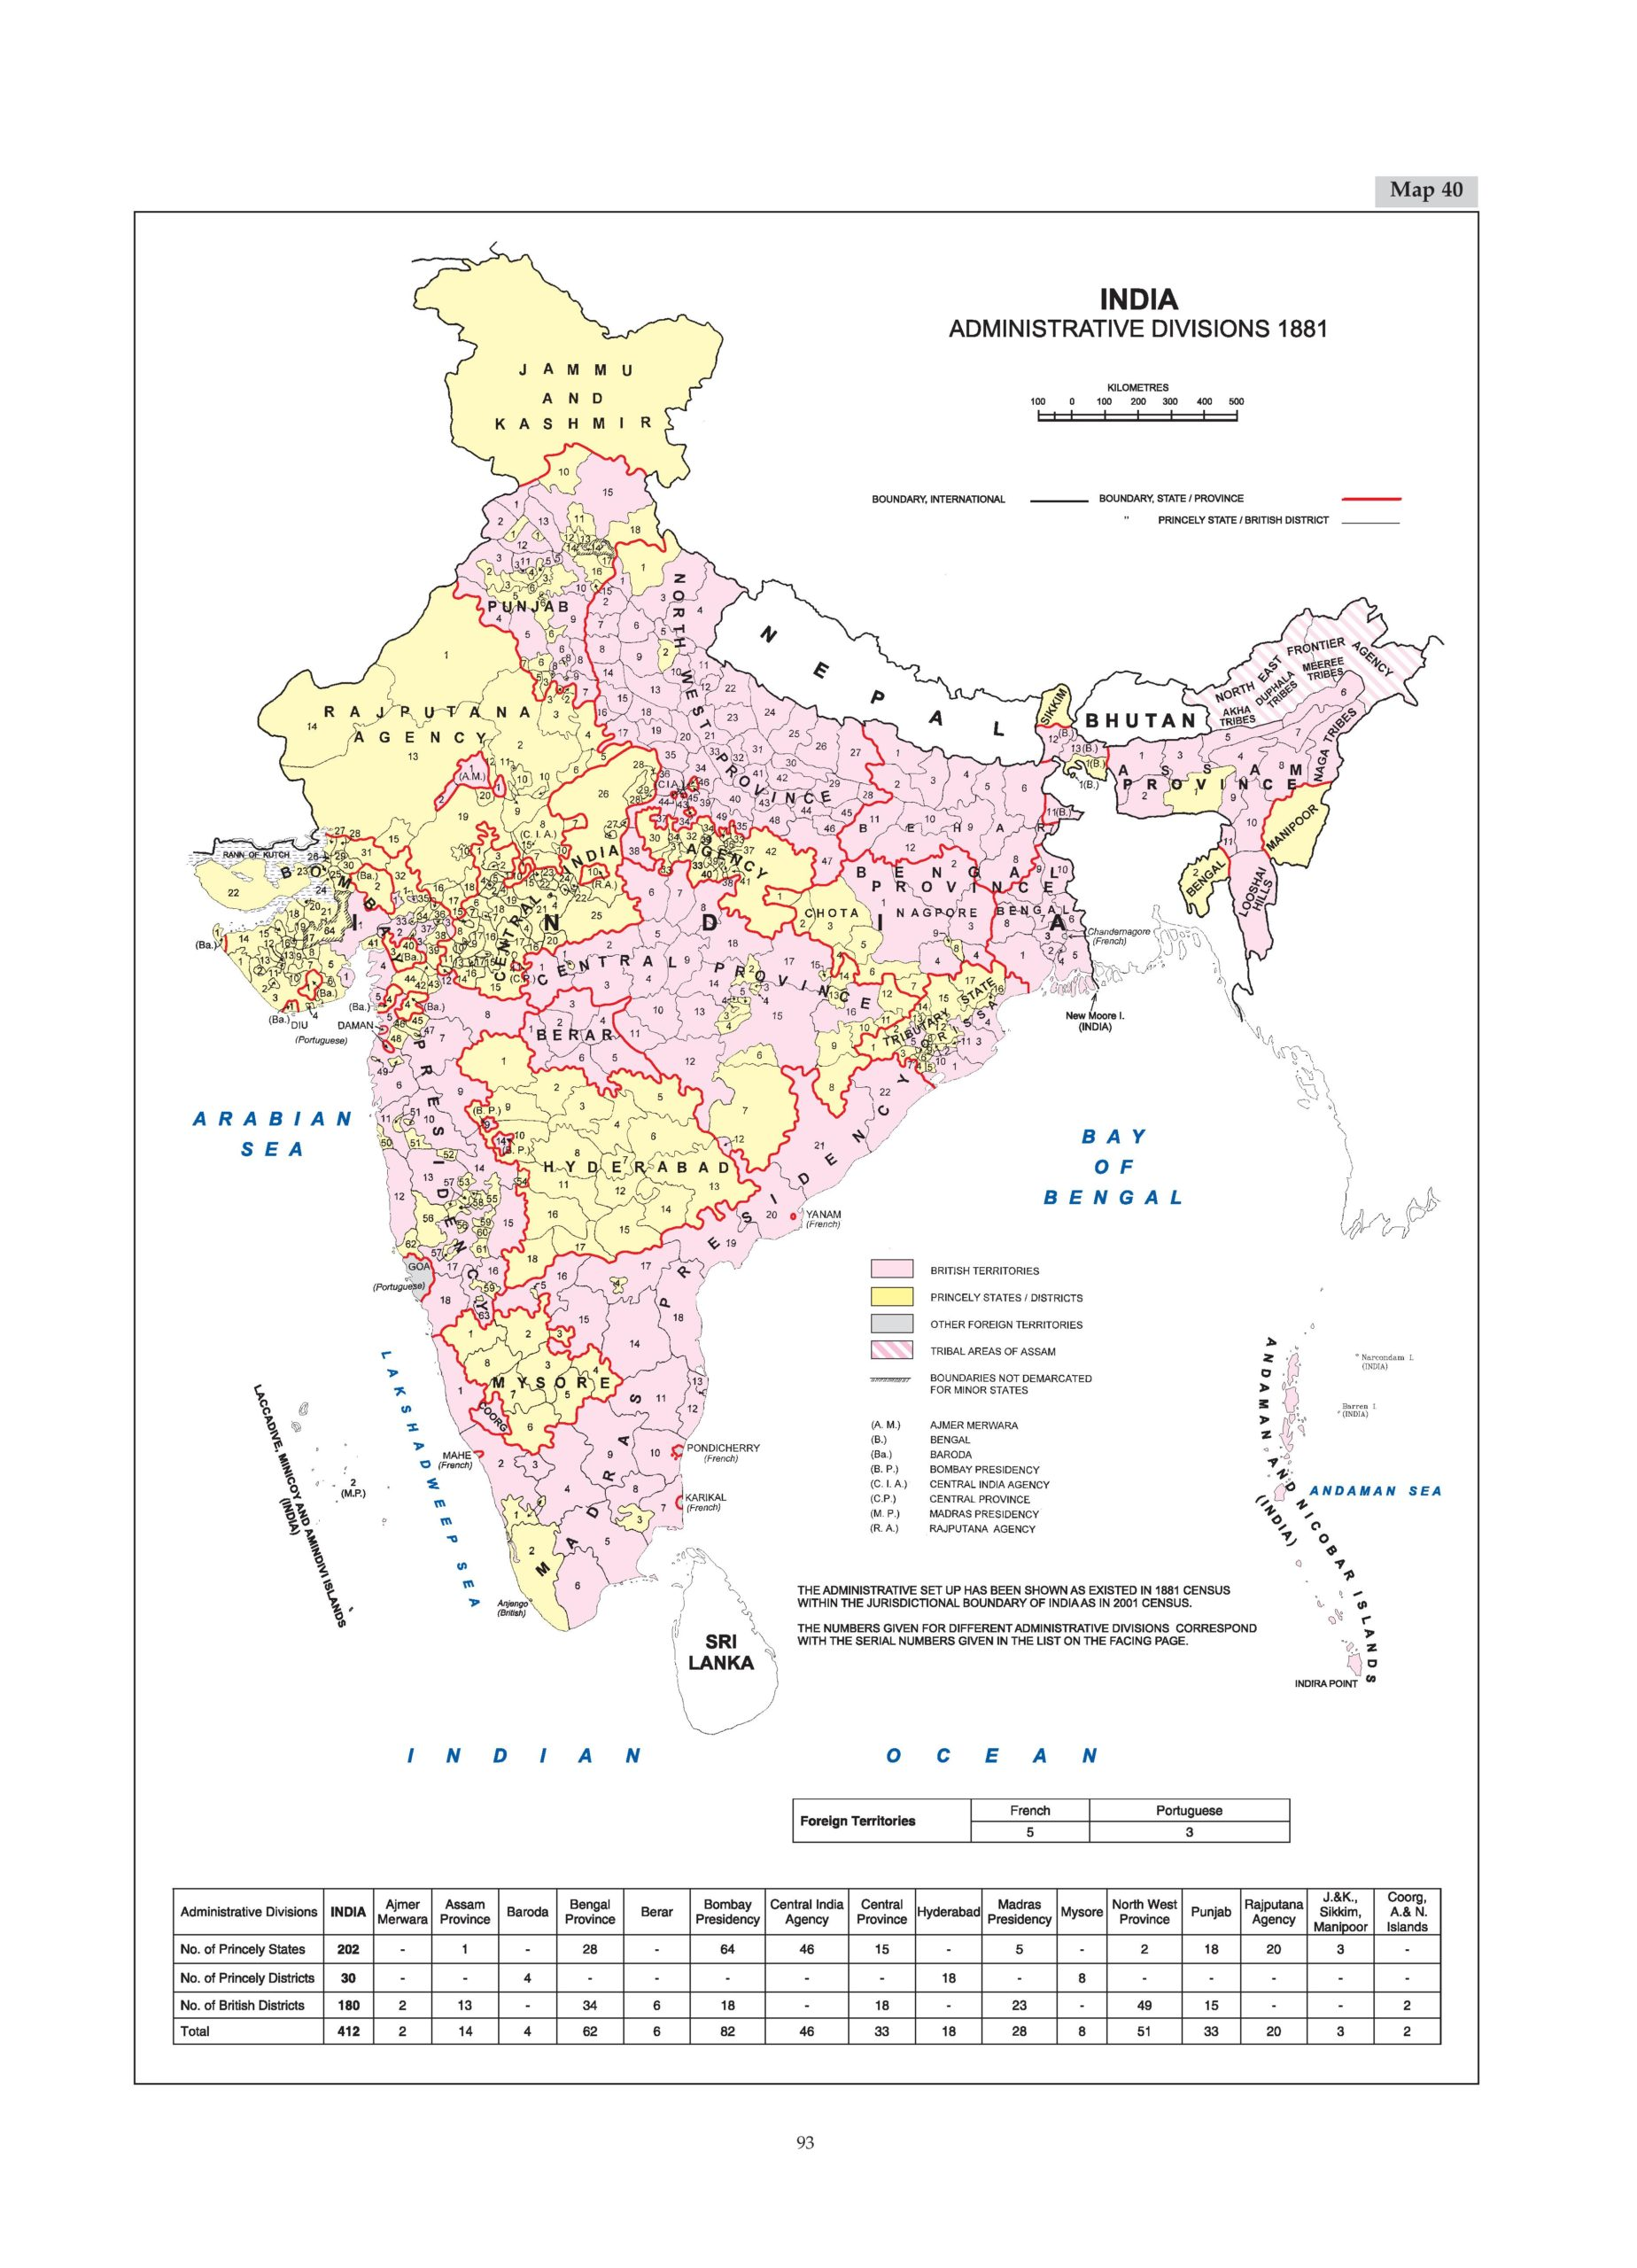 A pink and yellow map of the administrative districts of India in 1881. Administrative Atlas of India. Office of the Registrar General & Census Commissioner, India Ministry of Home Affairs, Government of India. 2011.